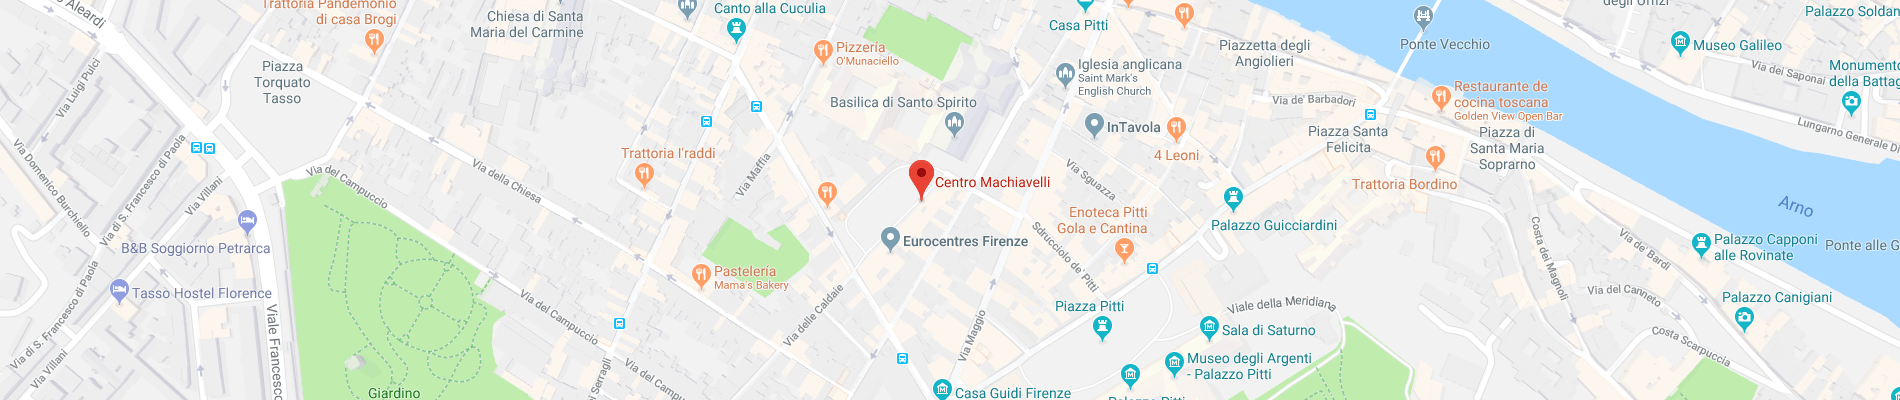 Map of Centro Machiavelli